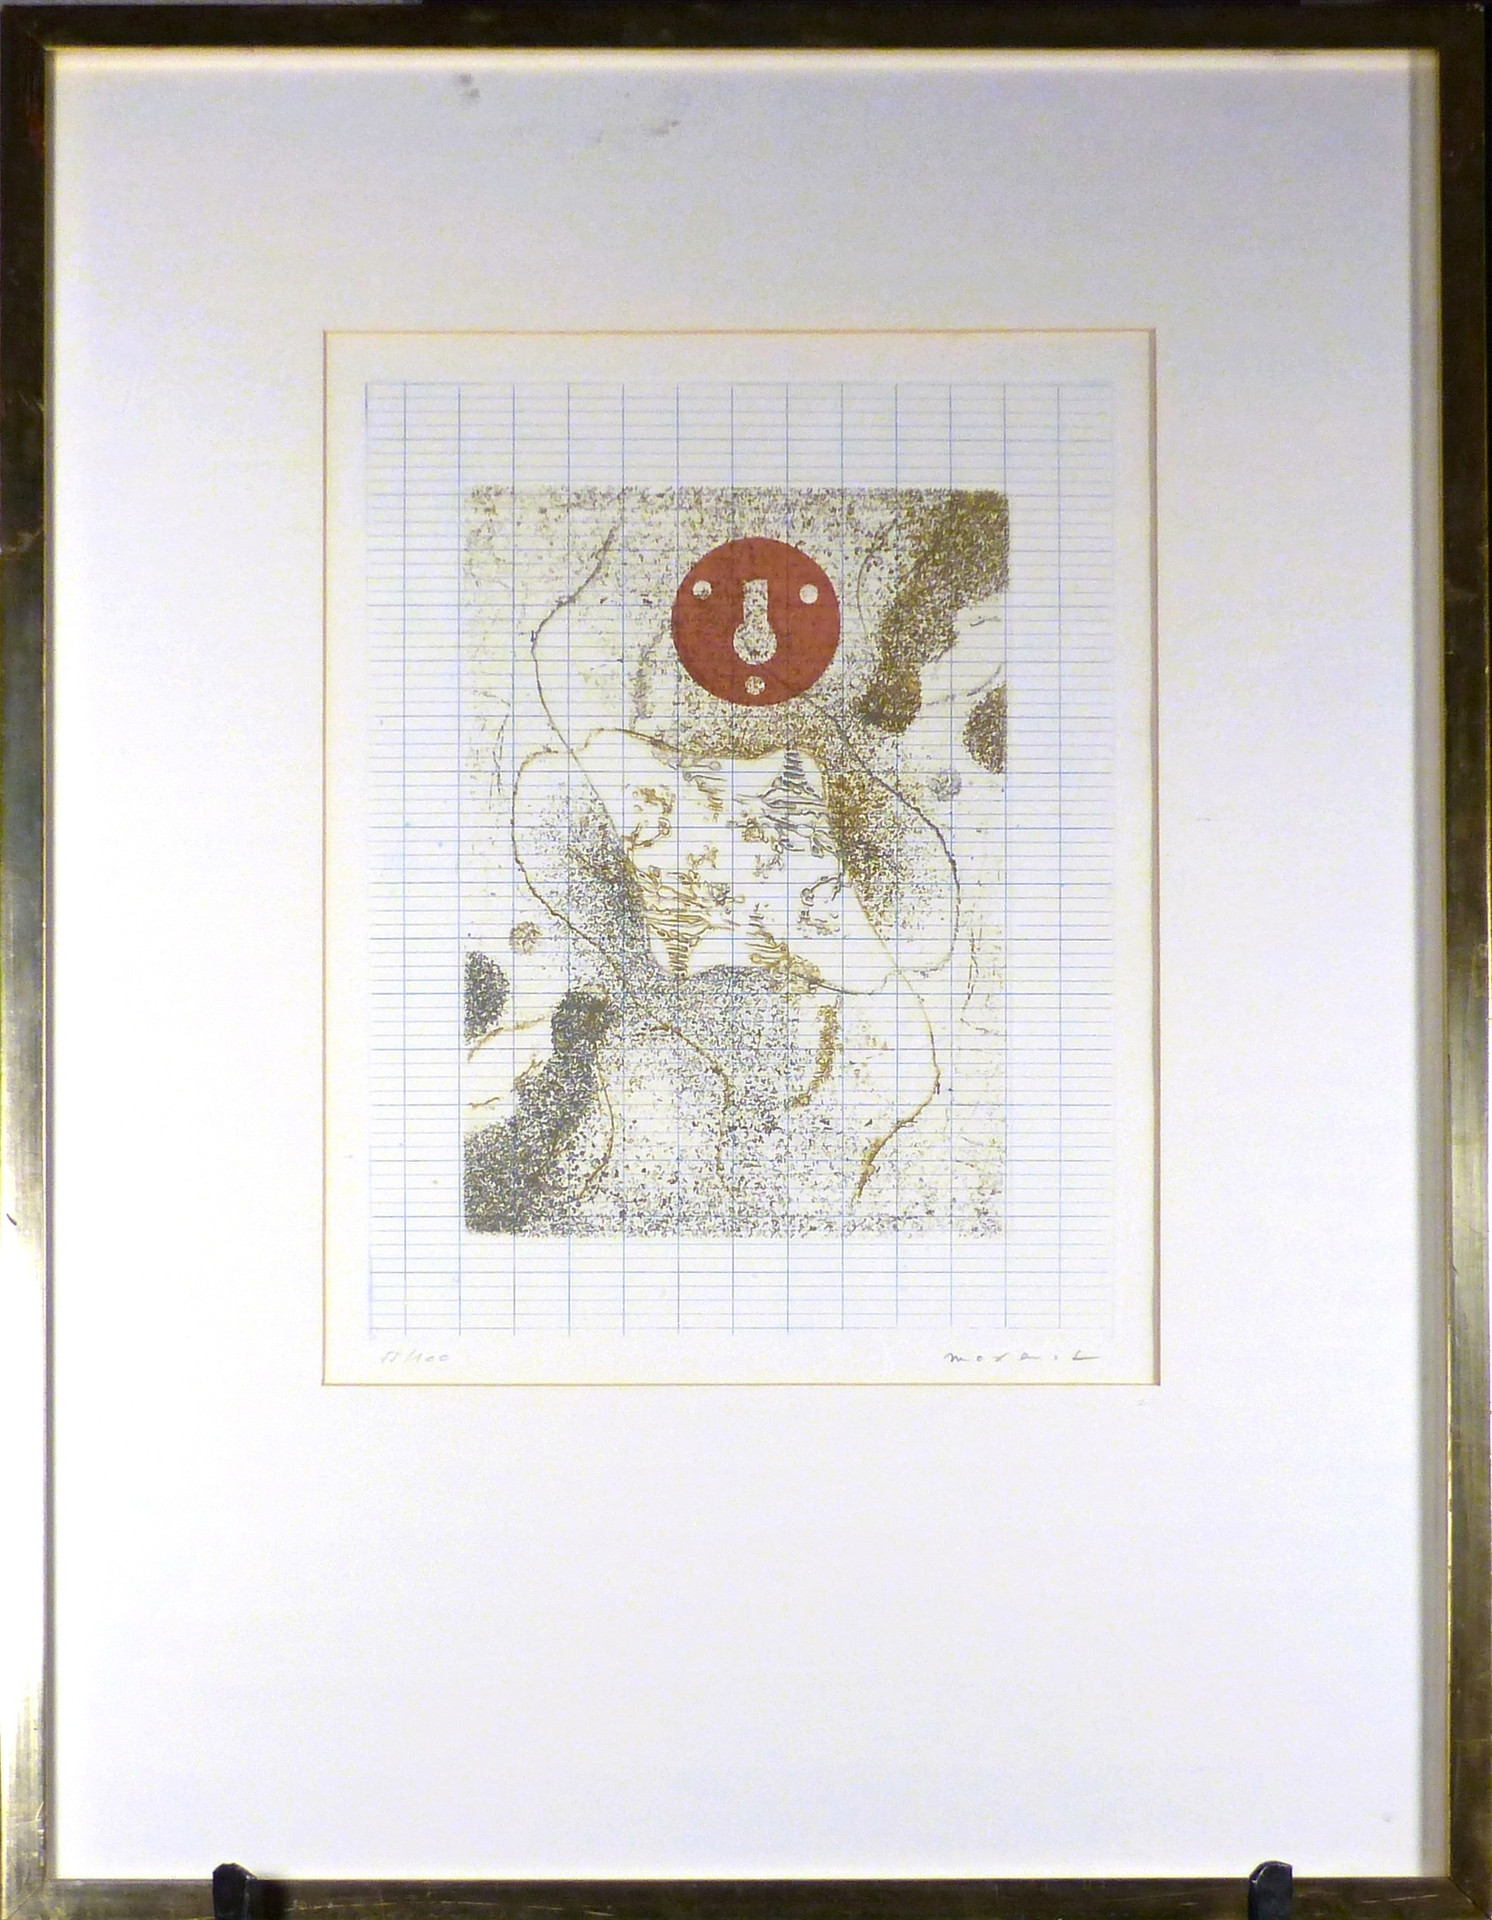 Invitation Au Voyage 1971 Etching and aquatint on paper 22 x 16 in. 55/100 Hand-signed and numbered